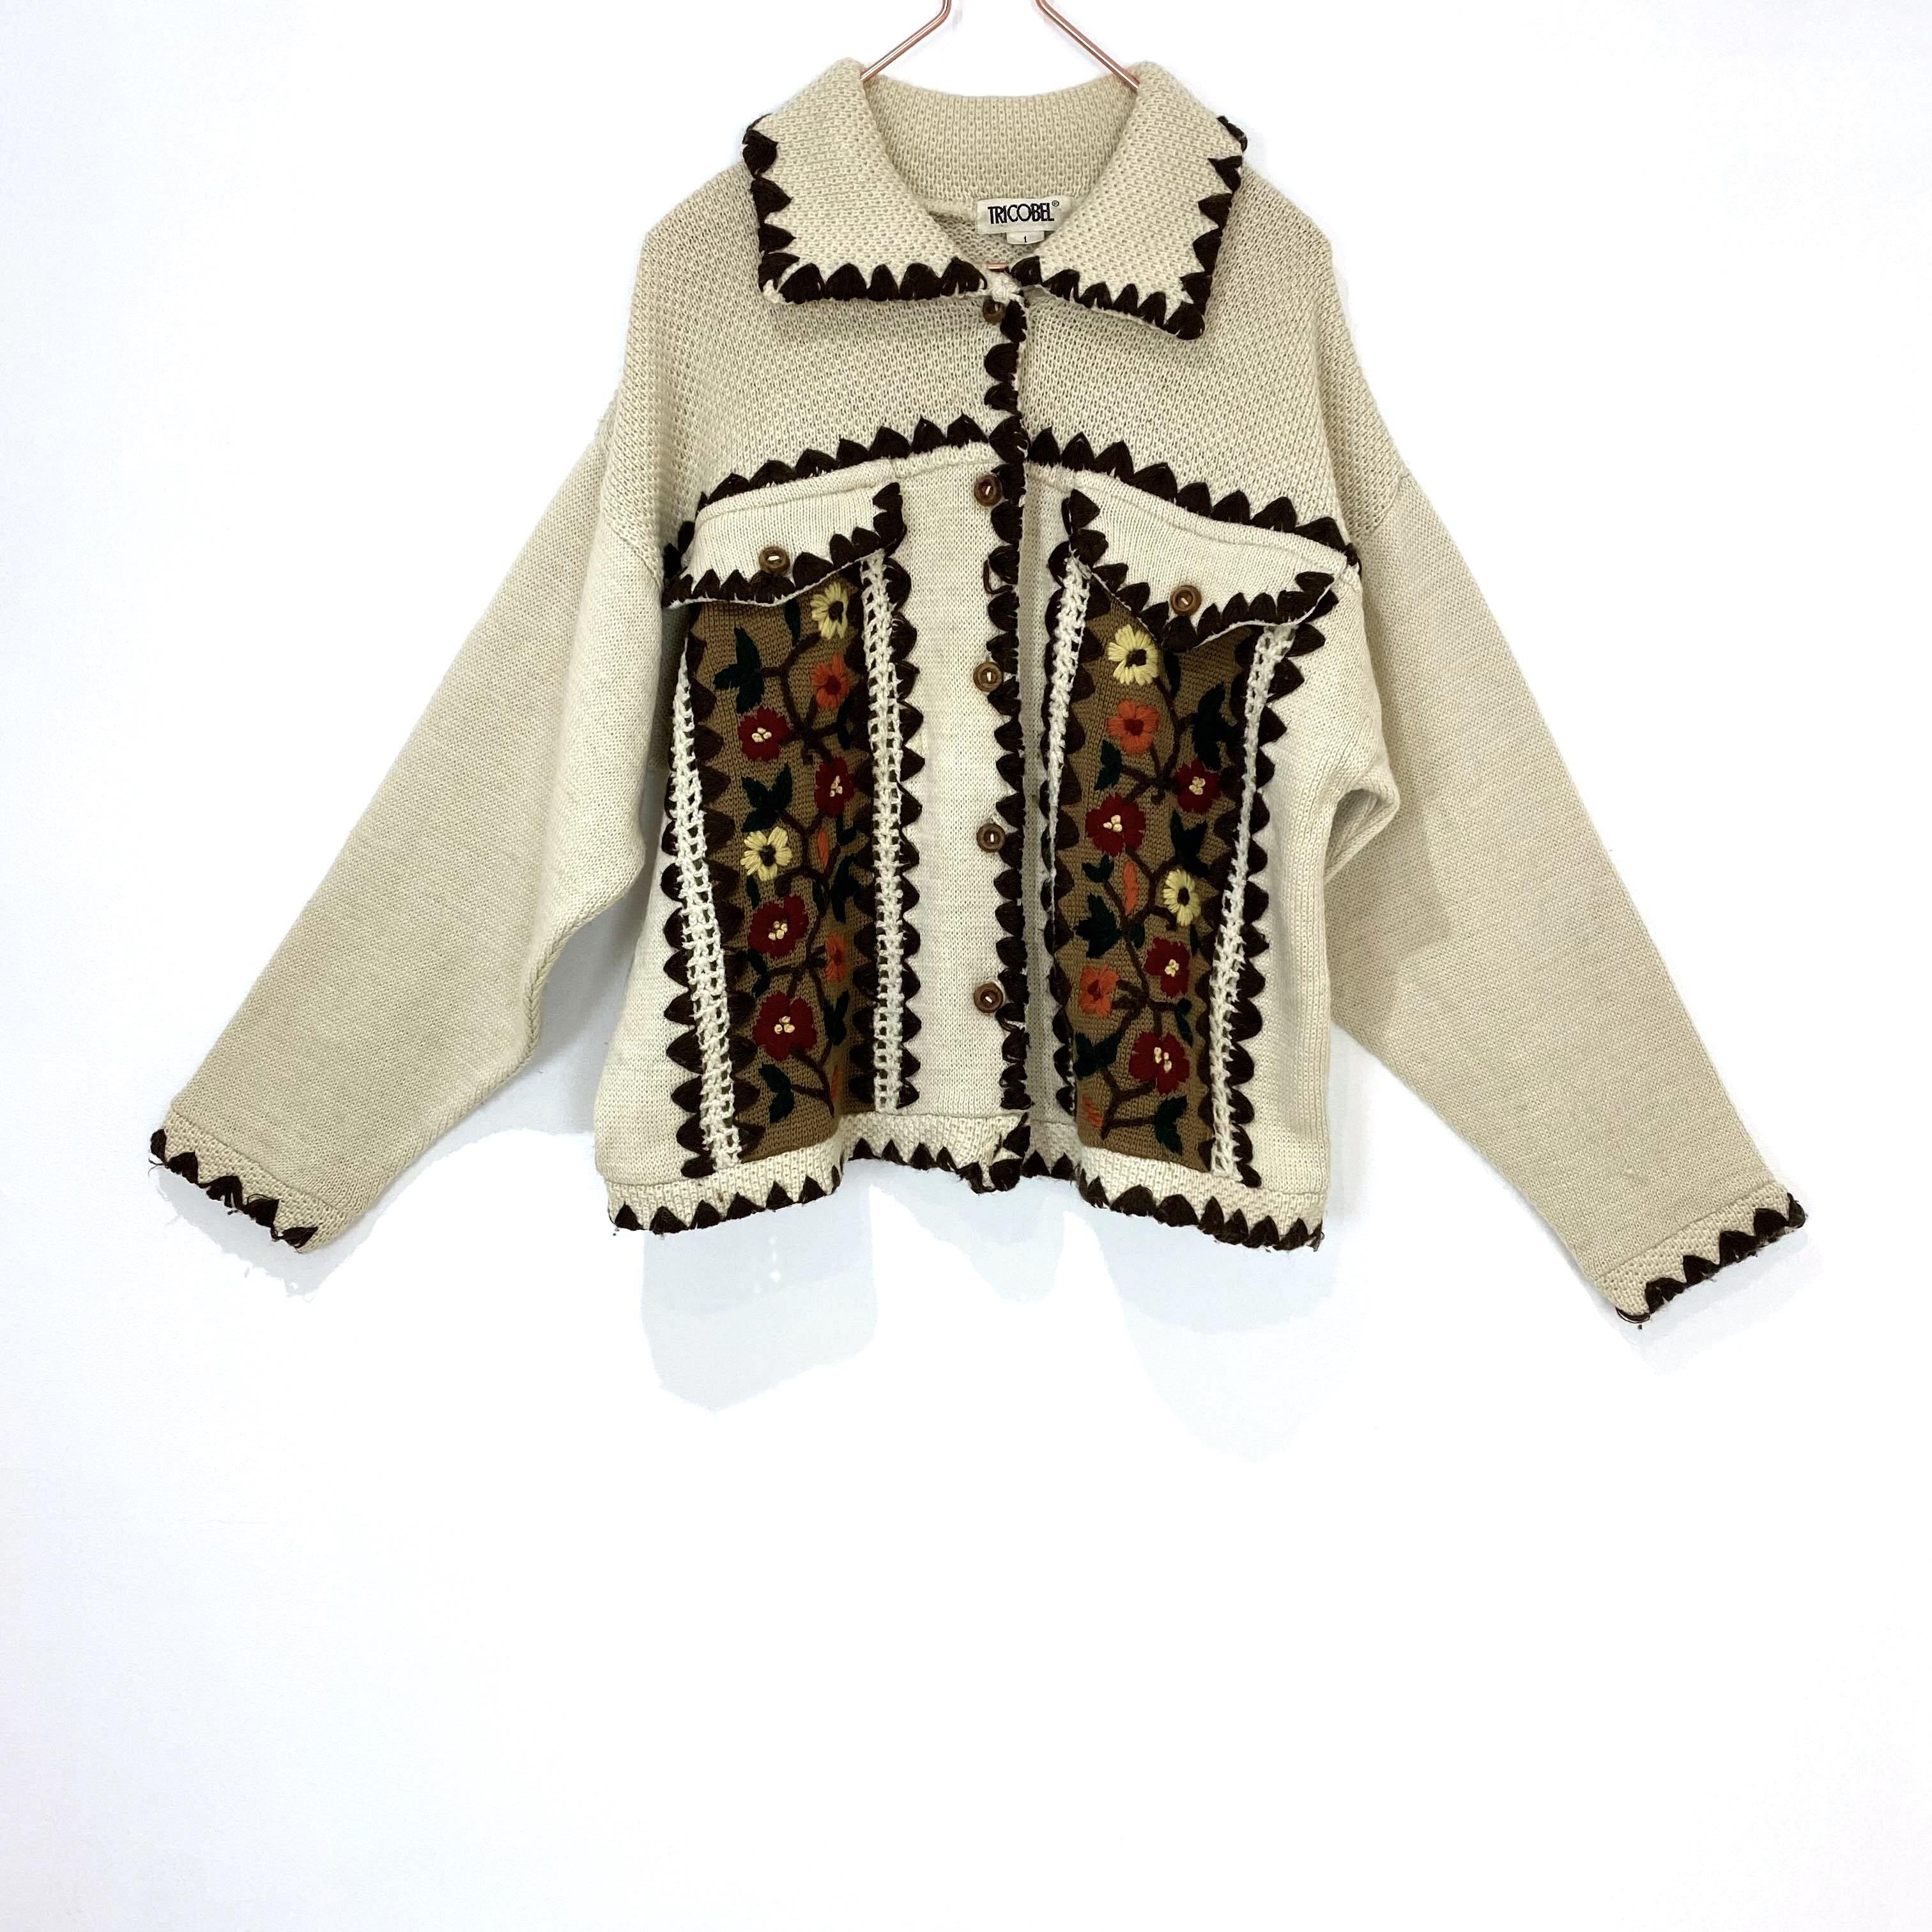 ◼︎80s vintage hand embroidery knit cardigan from France◼︎